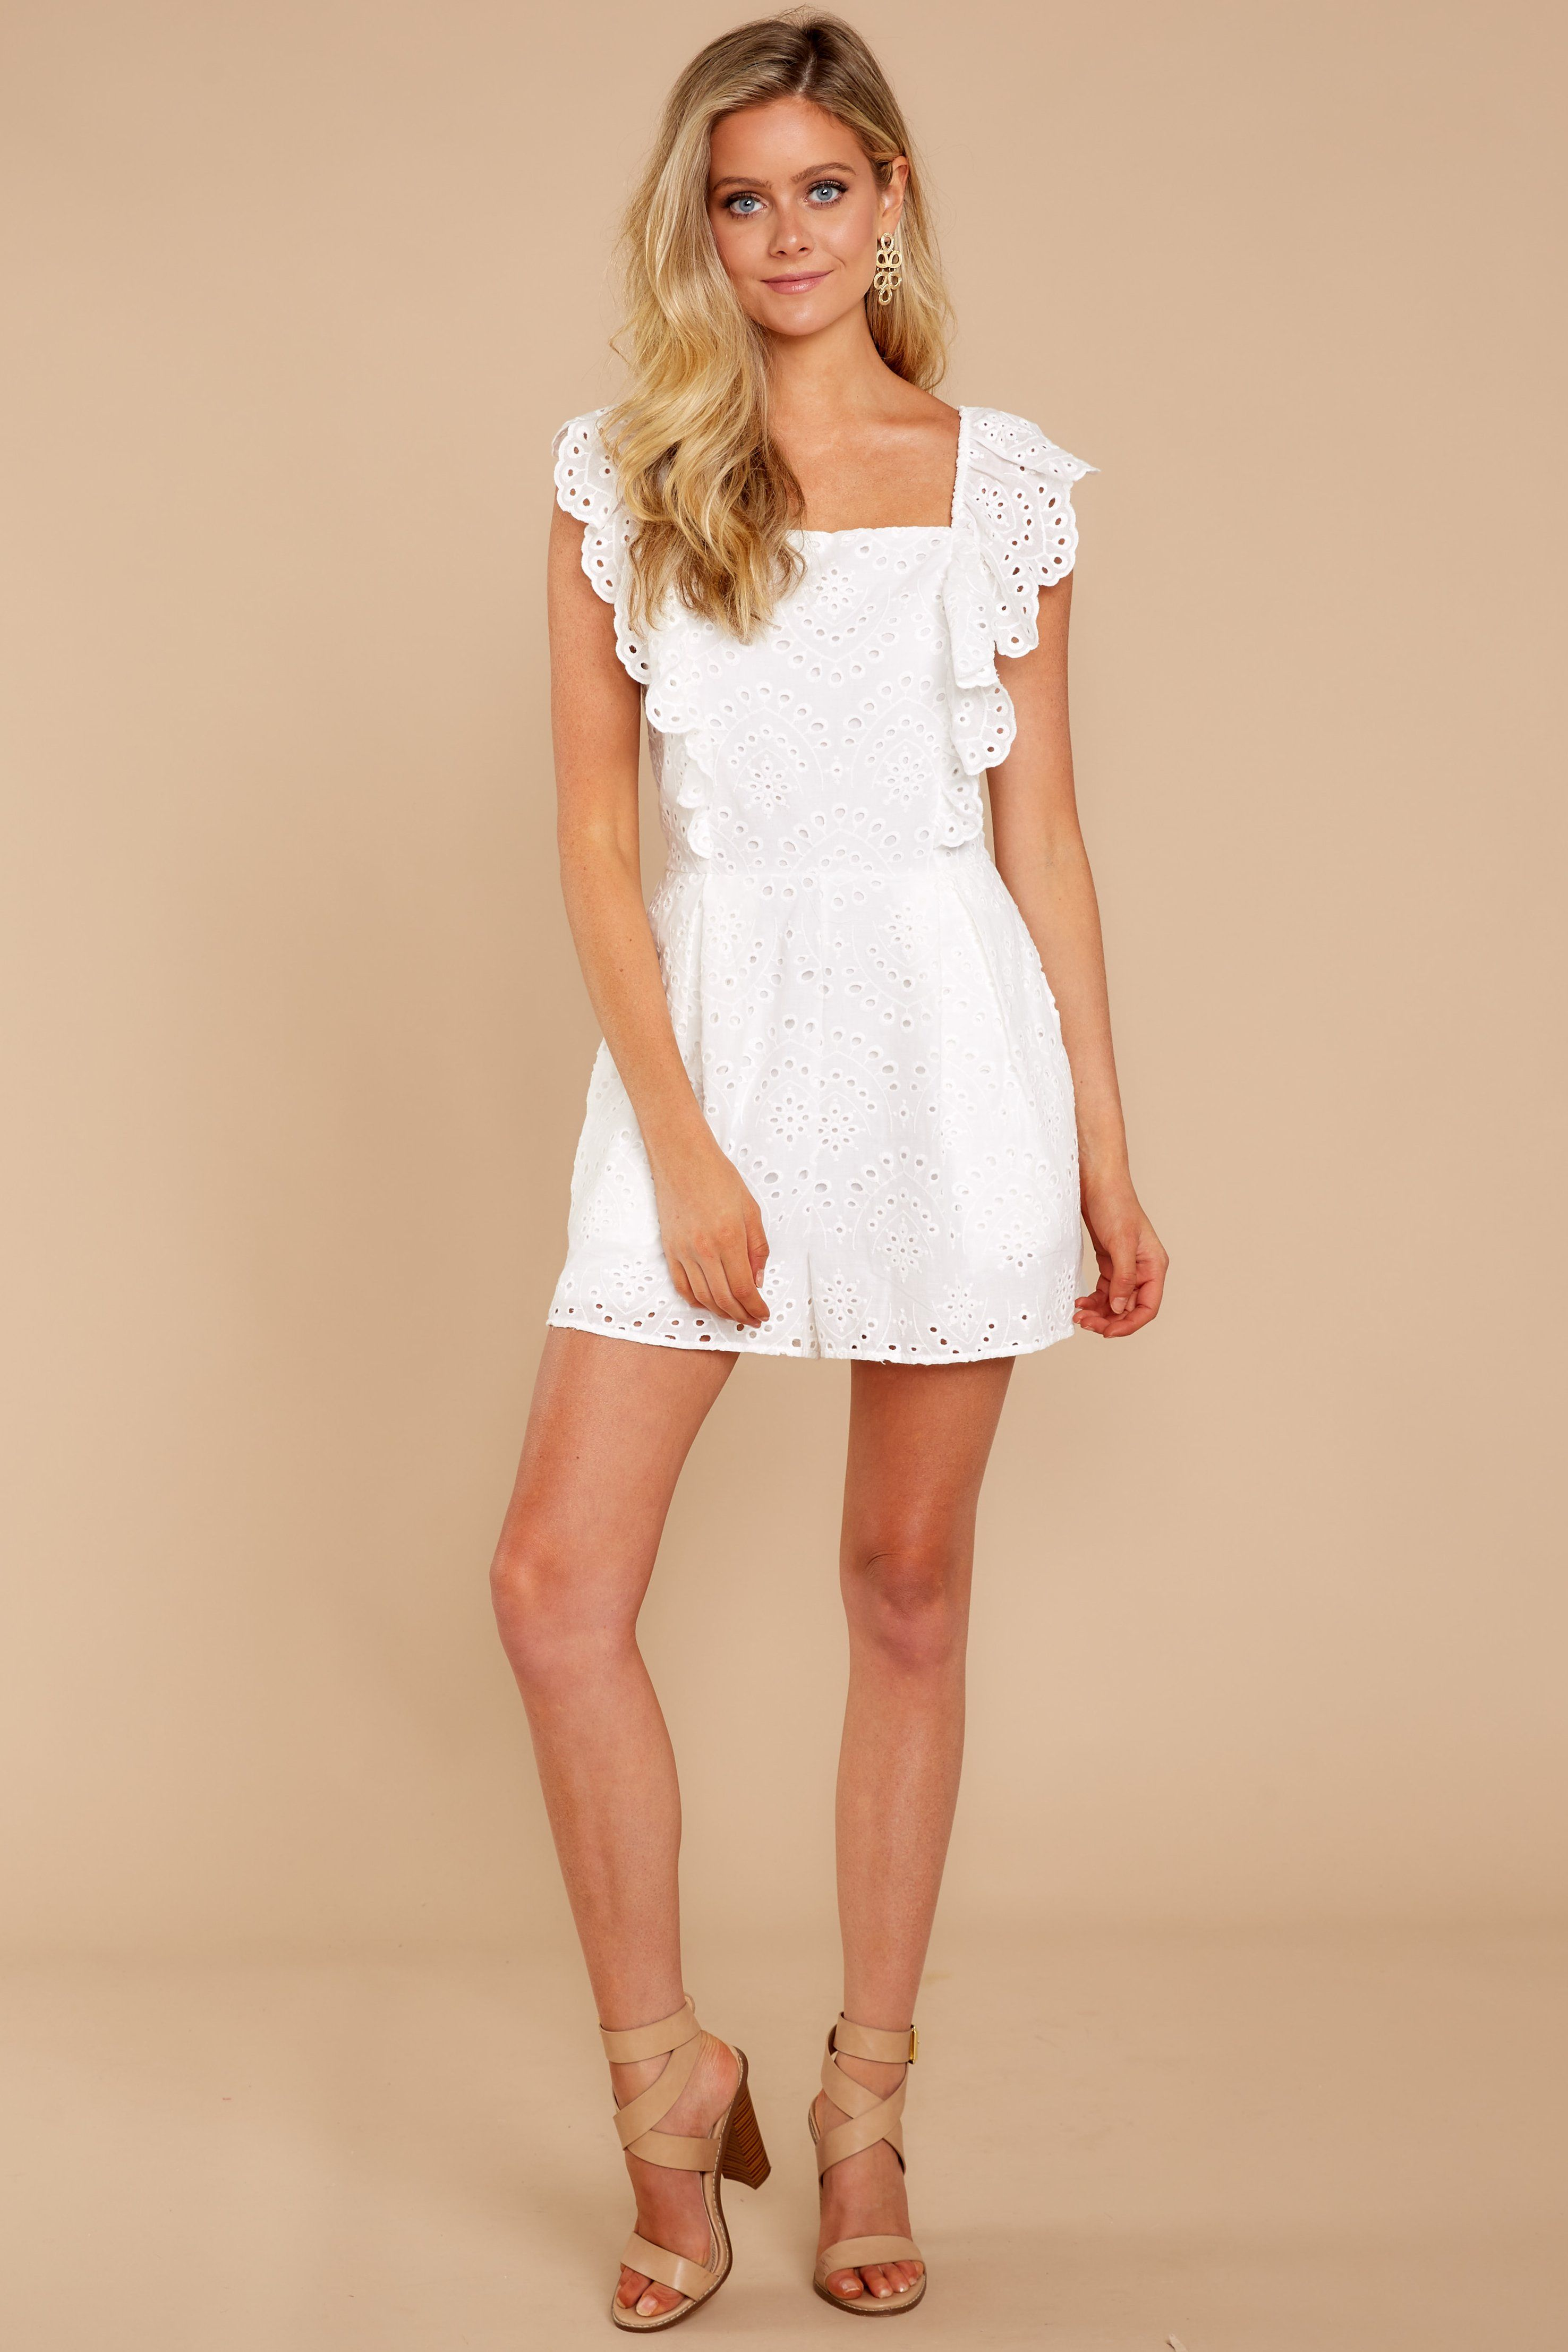 5efa3e45e15 Sweetest Touch White Eyelet Romper – Red Dress Boutique